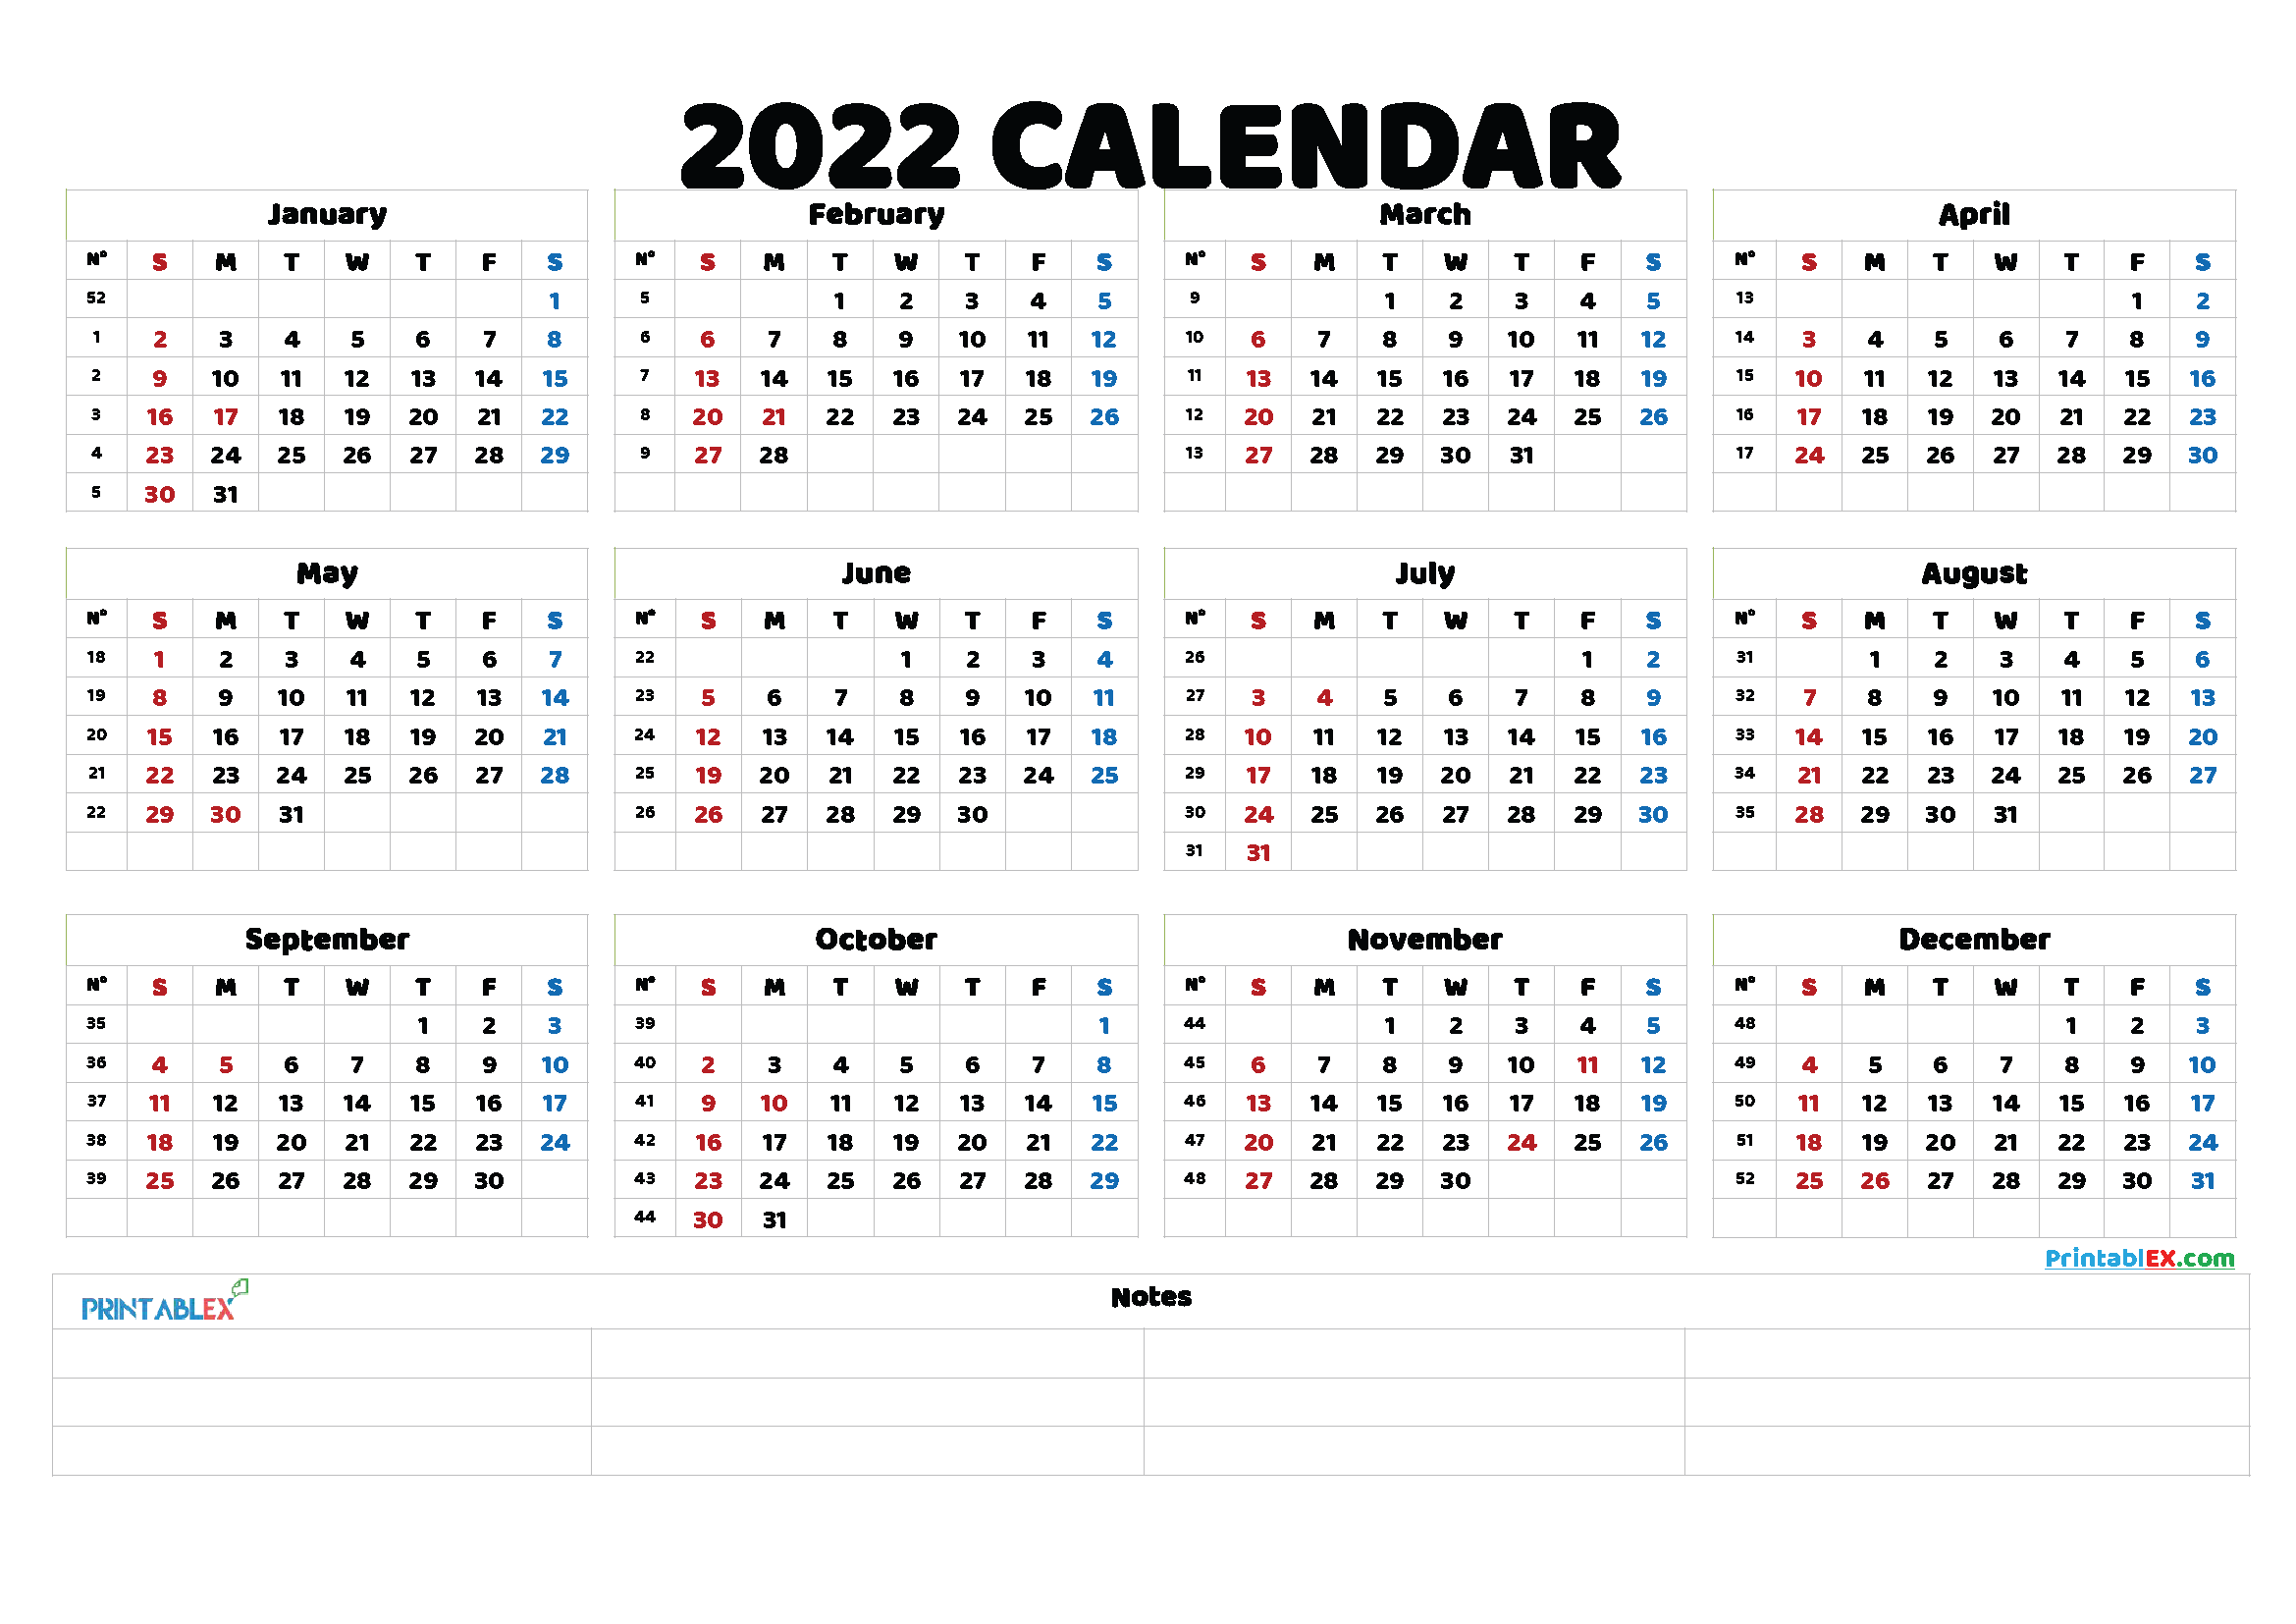 2022 Printable Yearly Calendar with Week Numbers (Font: insom)